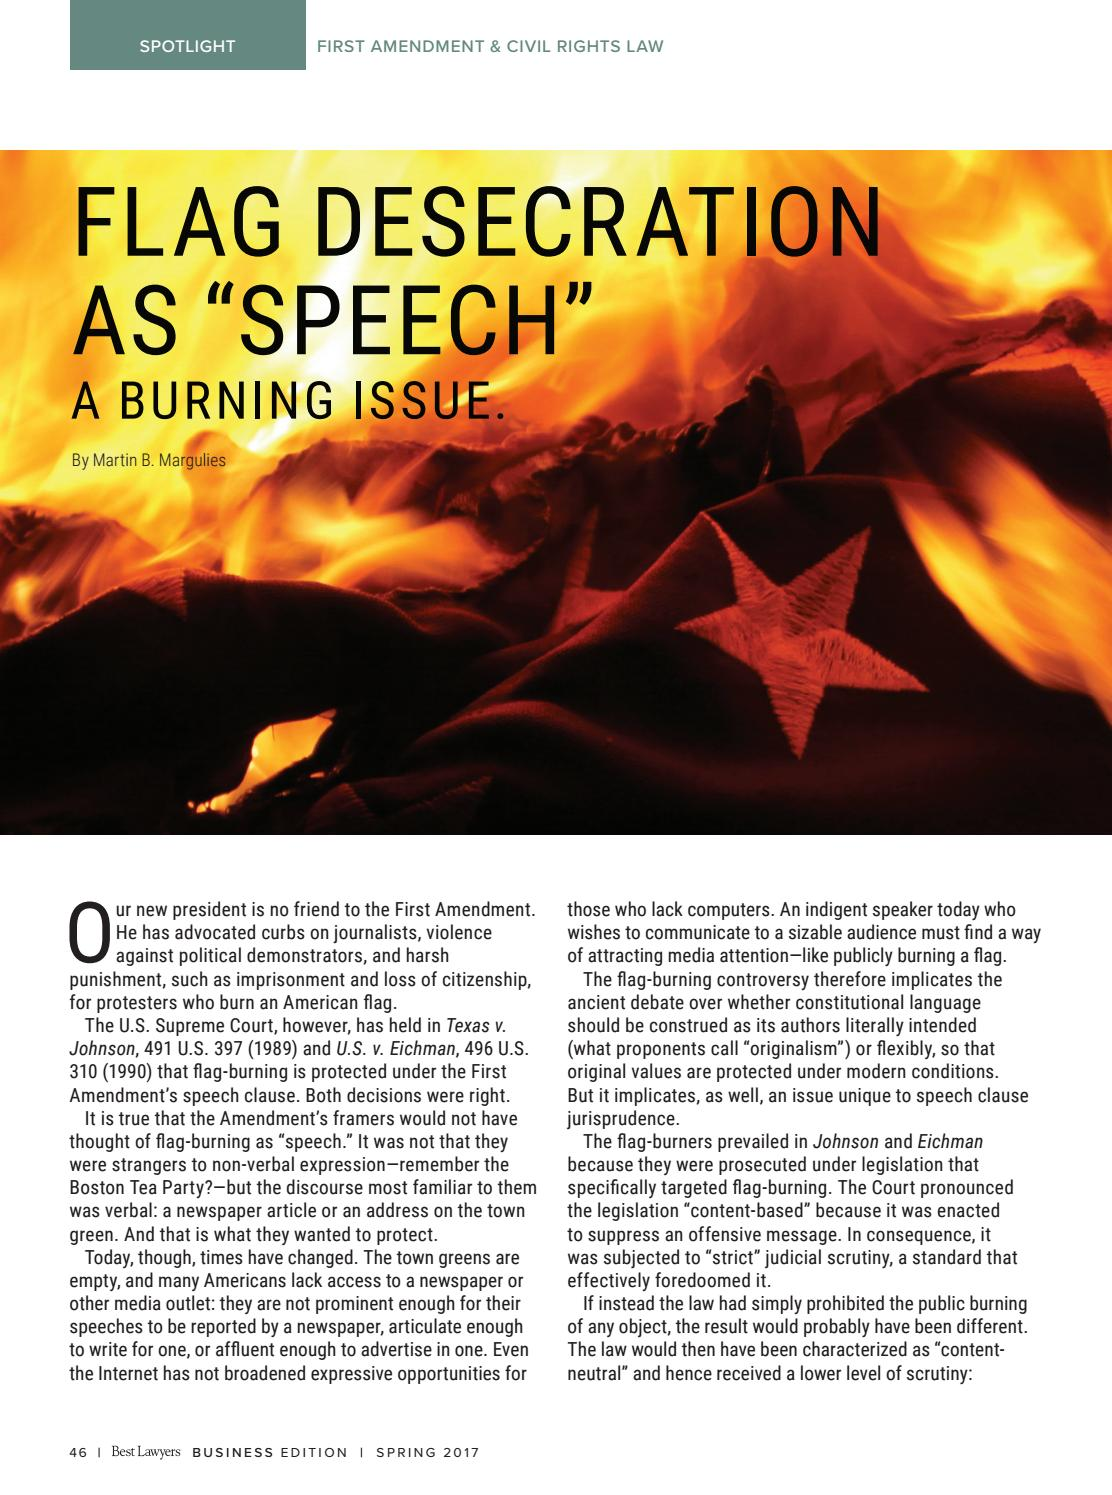 an analysis of first amendment in flag burning The case then went to the supreme court, which, in a 5-4 decision, found that burning the flag fell under symbolic speech — and was protected by the first amendment after texas v.